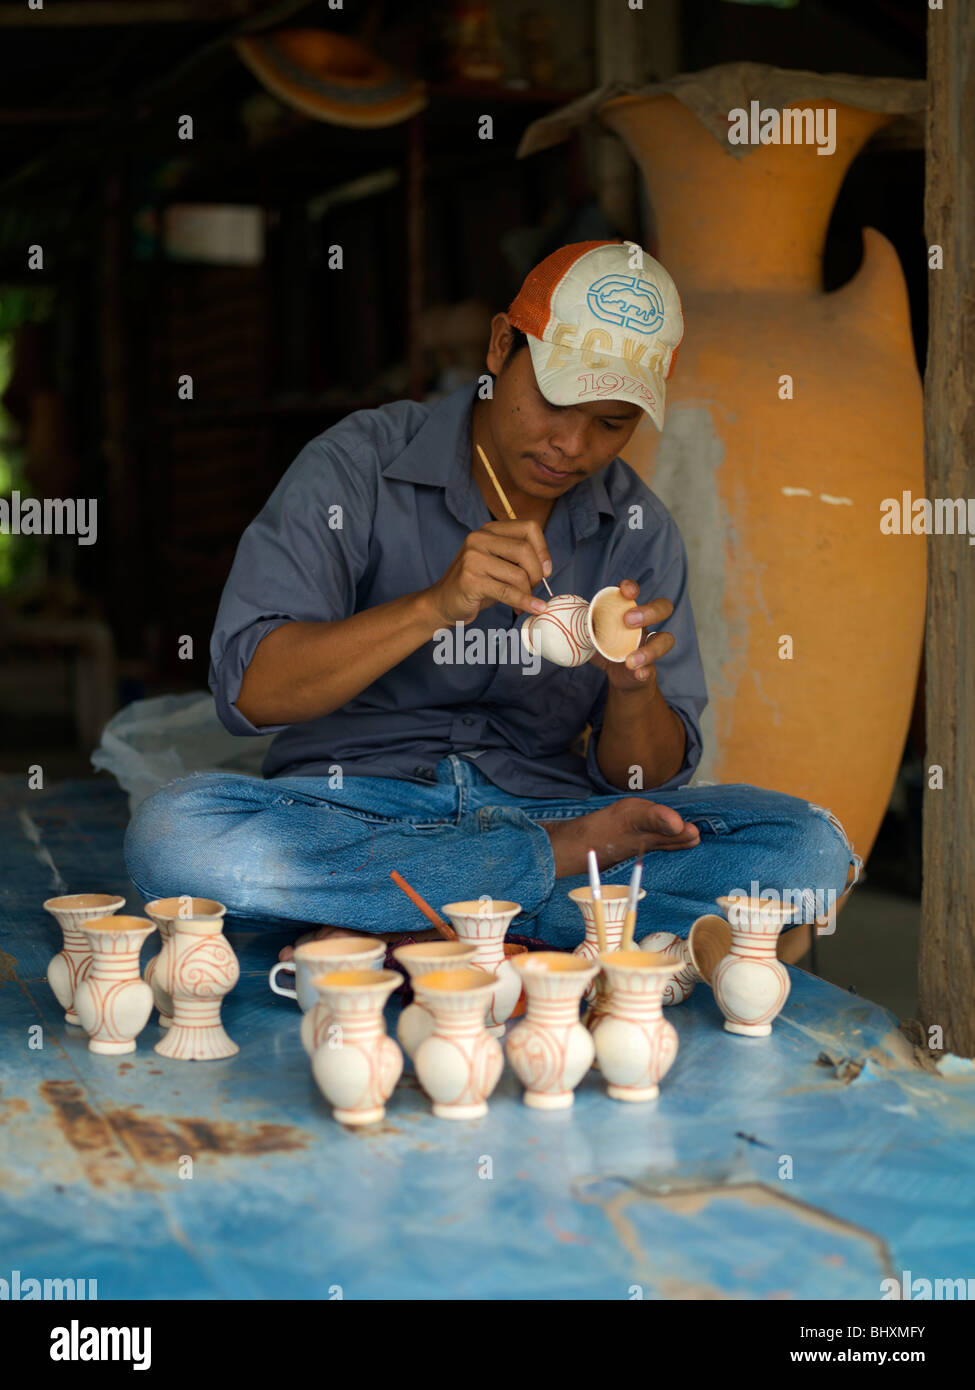 Jug maker painting the distinction design in Ban Chiang, Udon Thani, Thailand - Stock Image